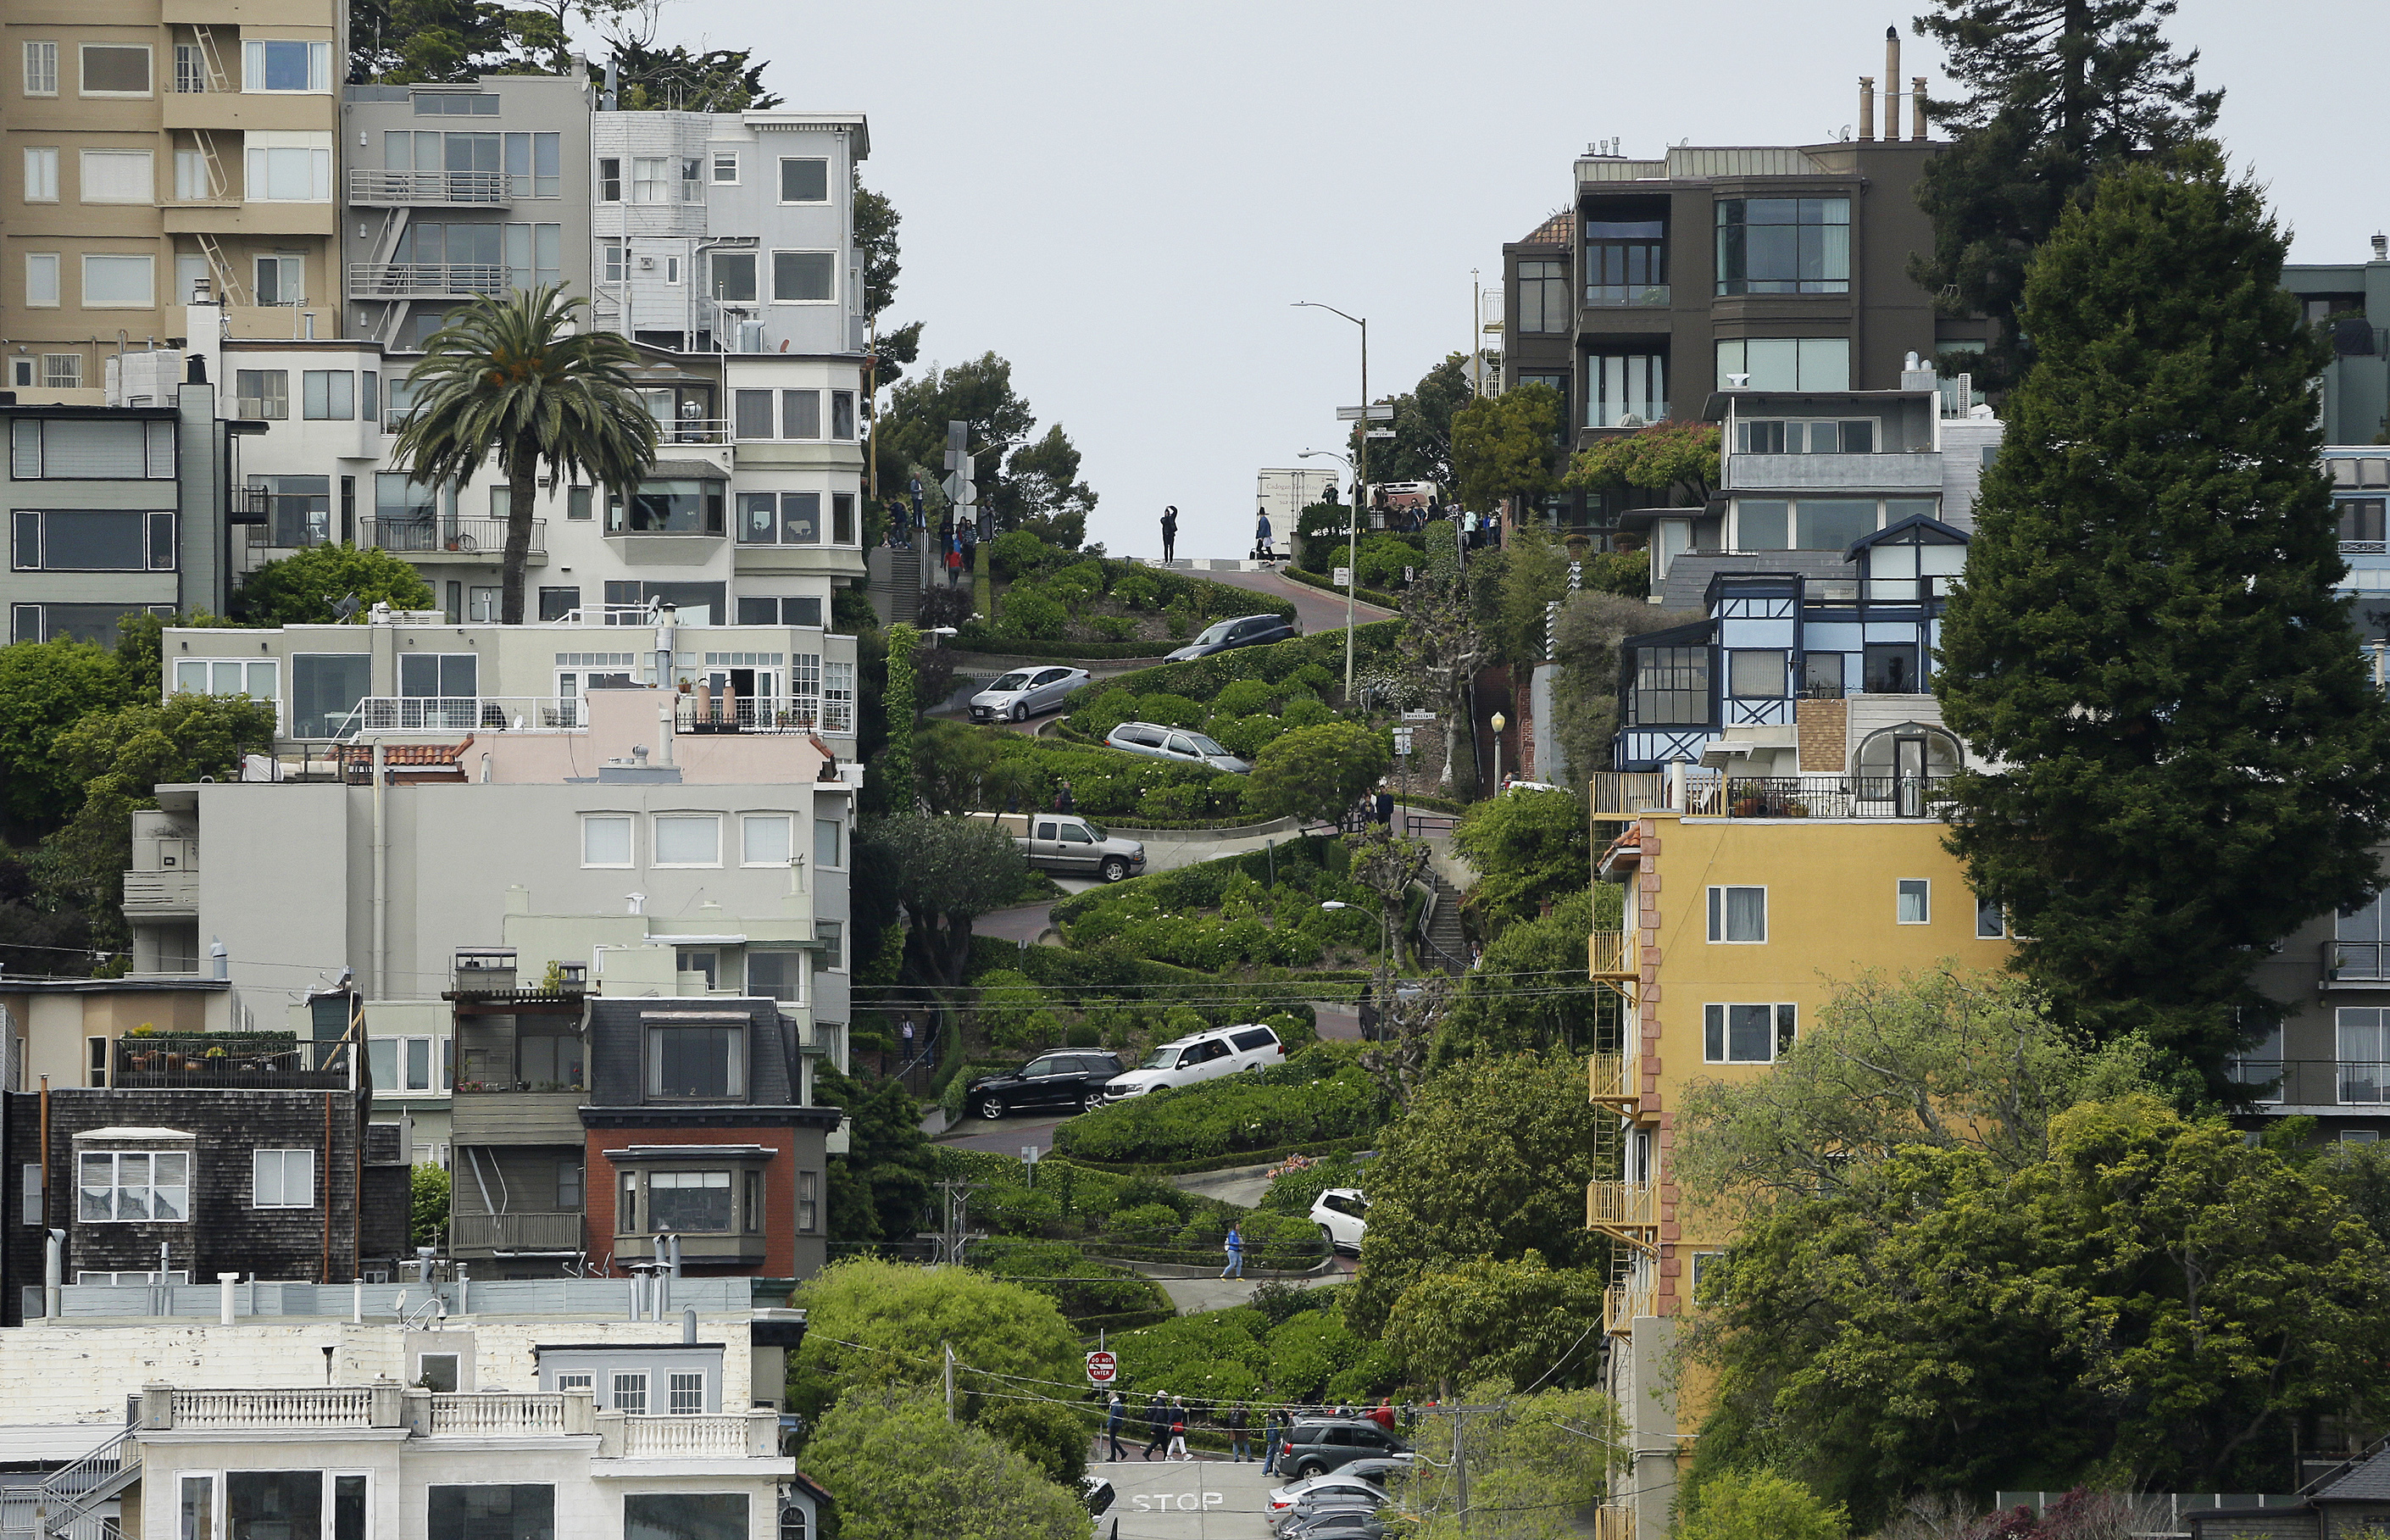 Cars wind their way down Lombard Street in San Francisco, a crooked street flanked by homes and apartment buildings.